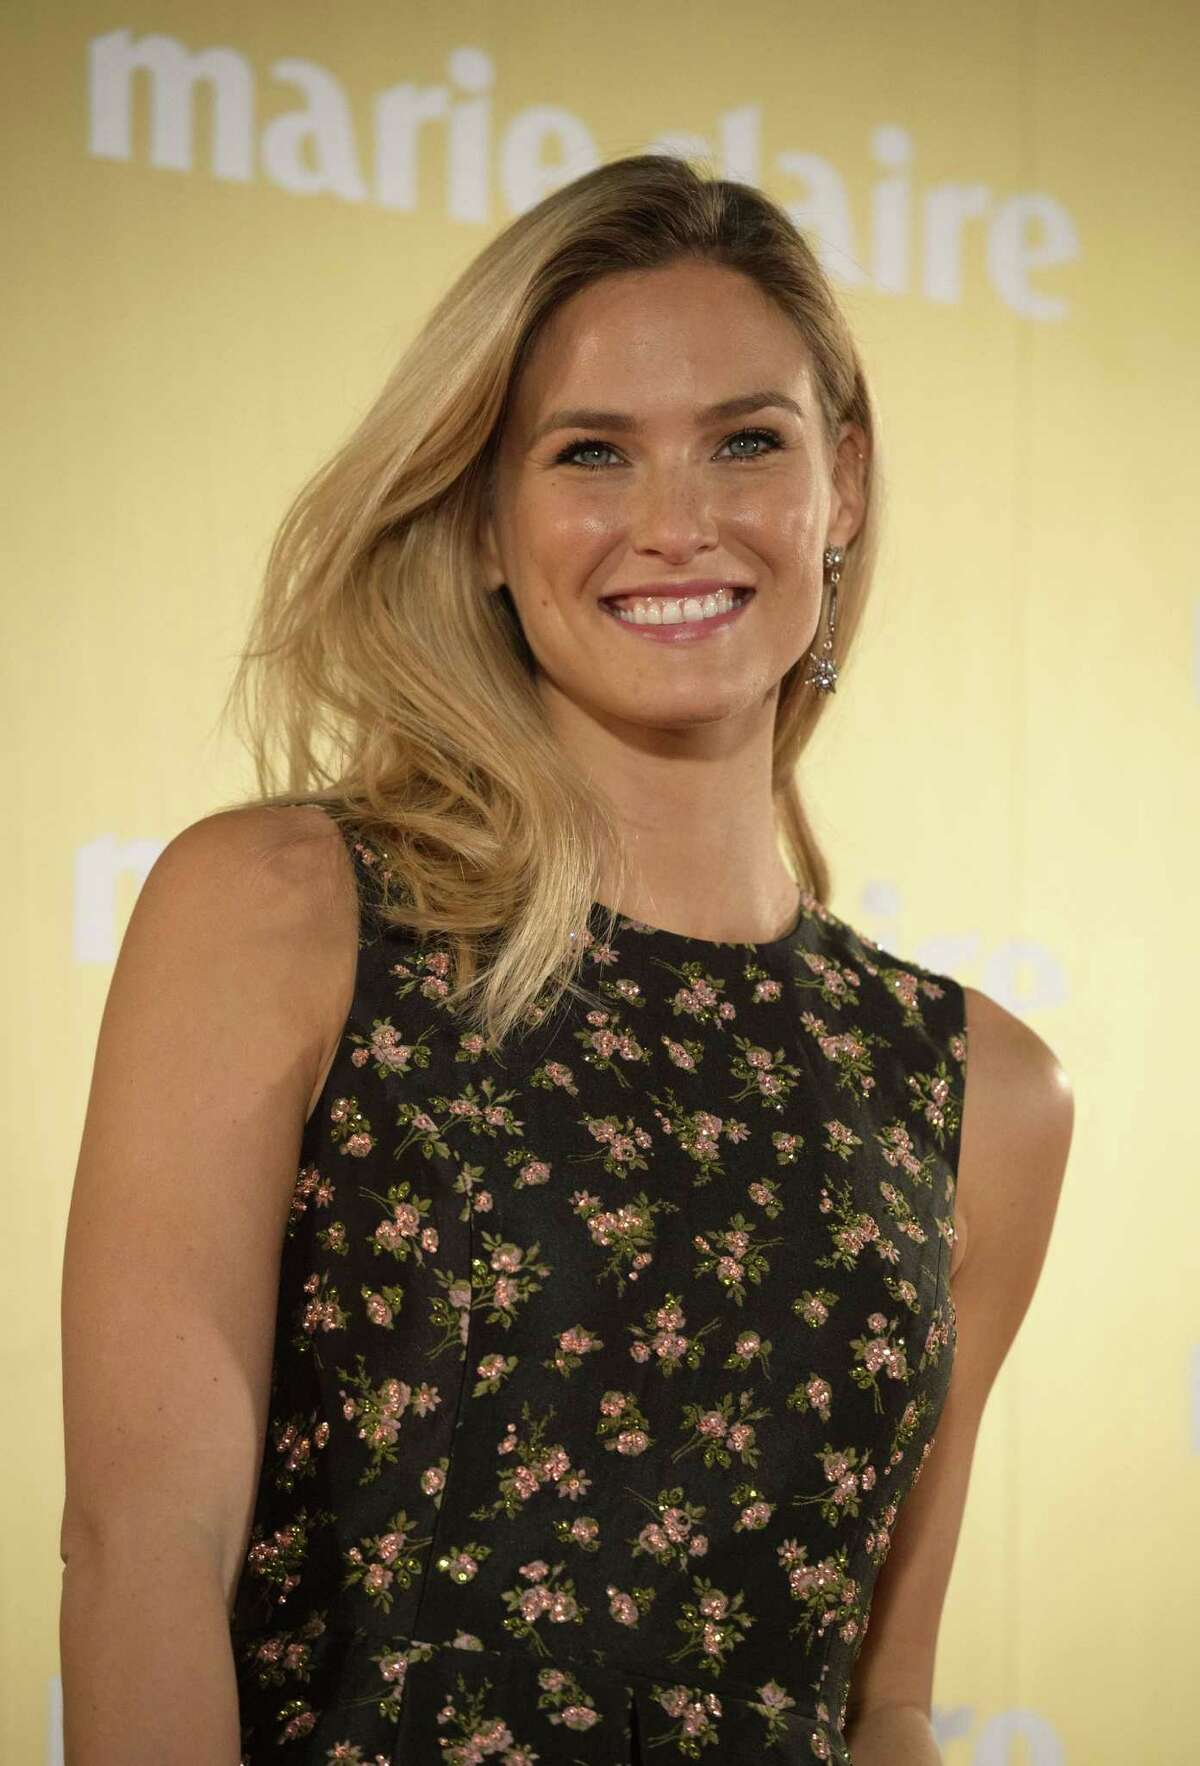 Israeli model Bar Refaeli poses as she arrives for the Marie Claire XII Fashion Prix awards in Madrid on November 19, 2014. AFP PHOTO / DANI POZODANI POZO/AFP/Getty Images